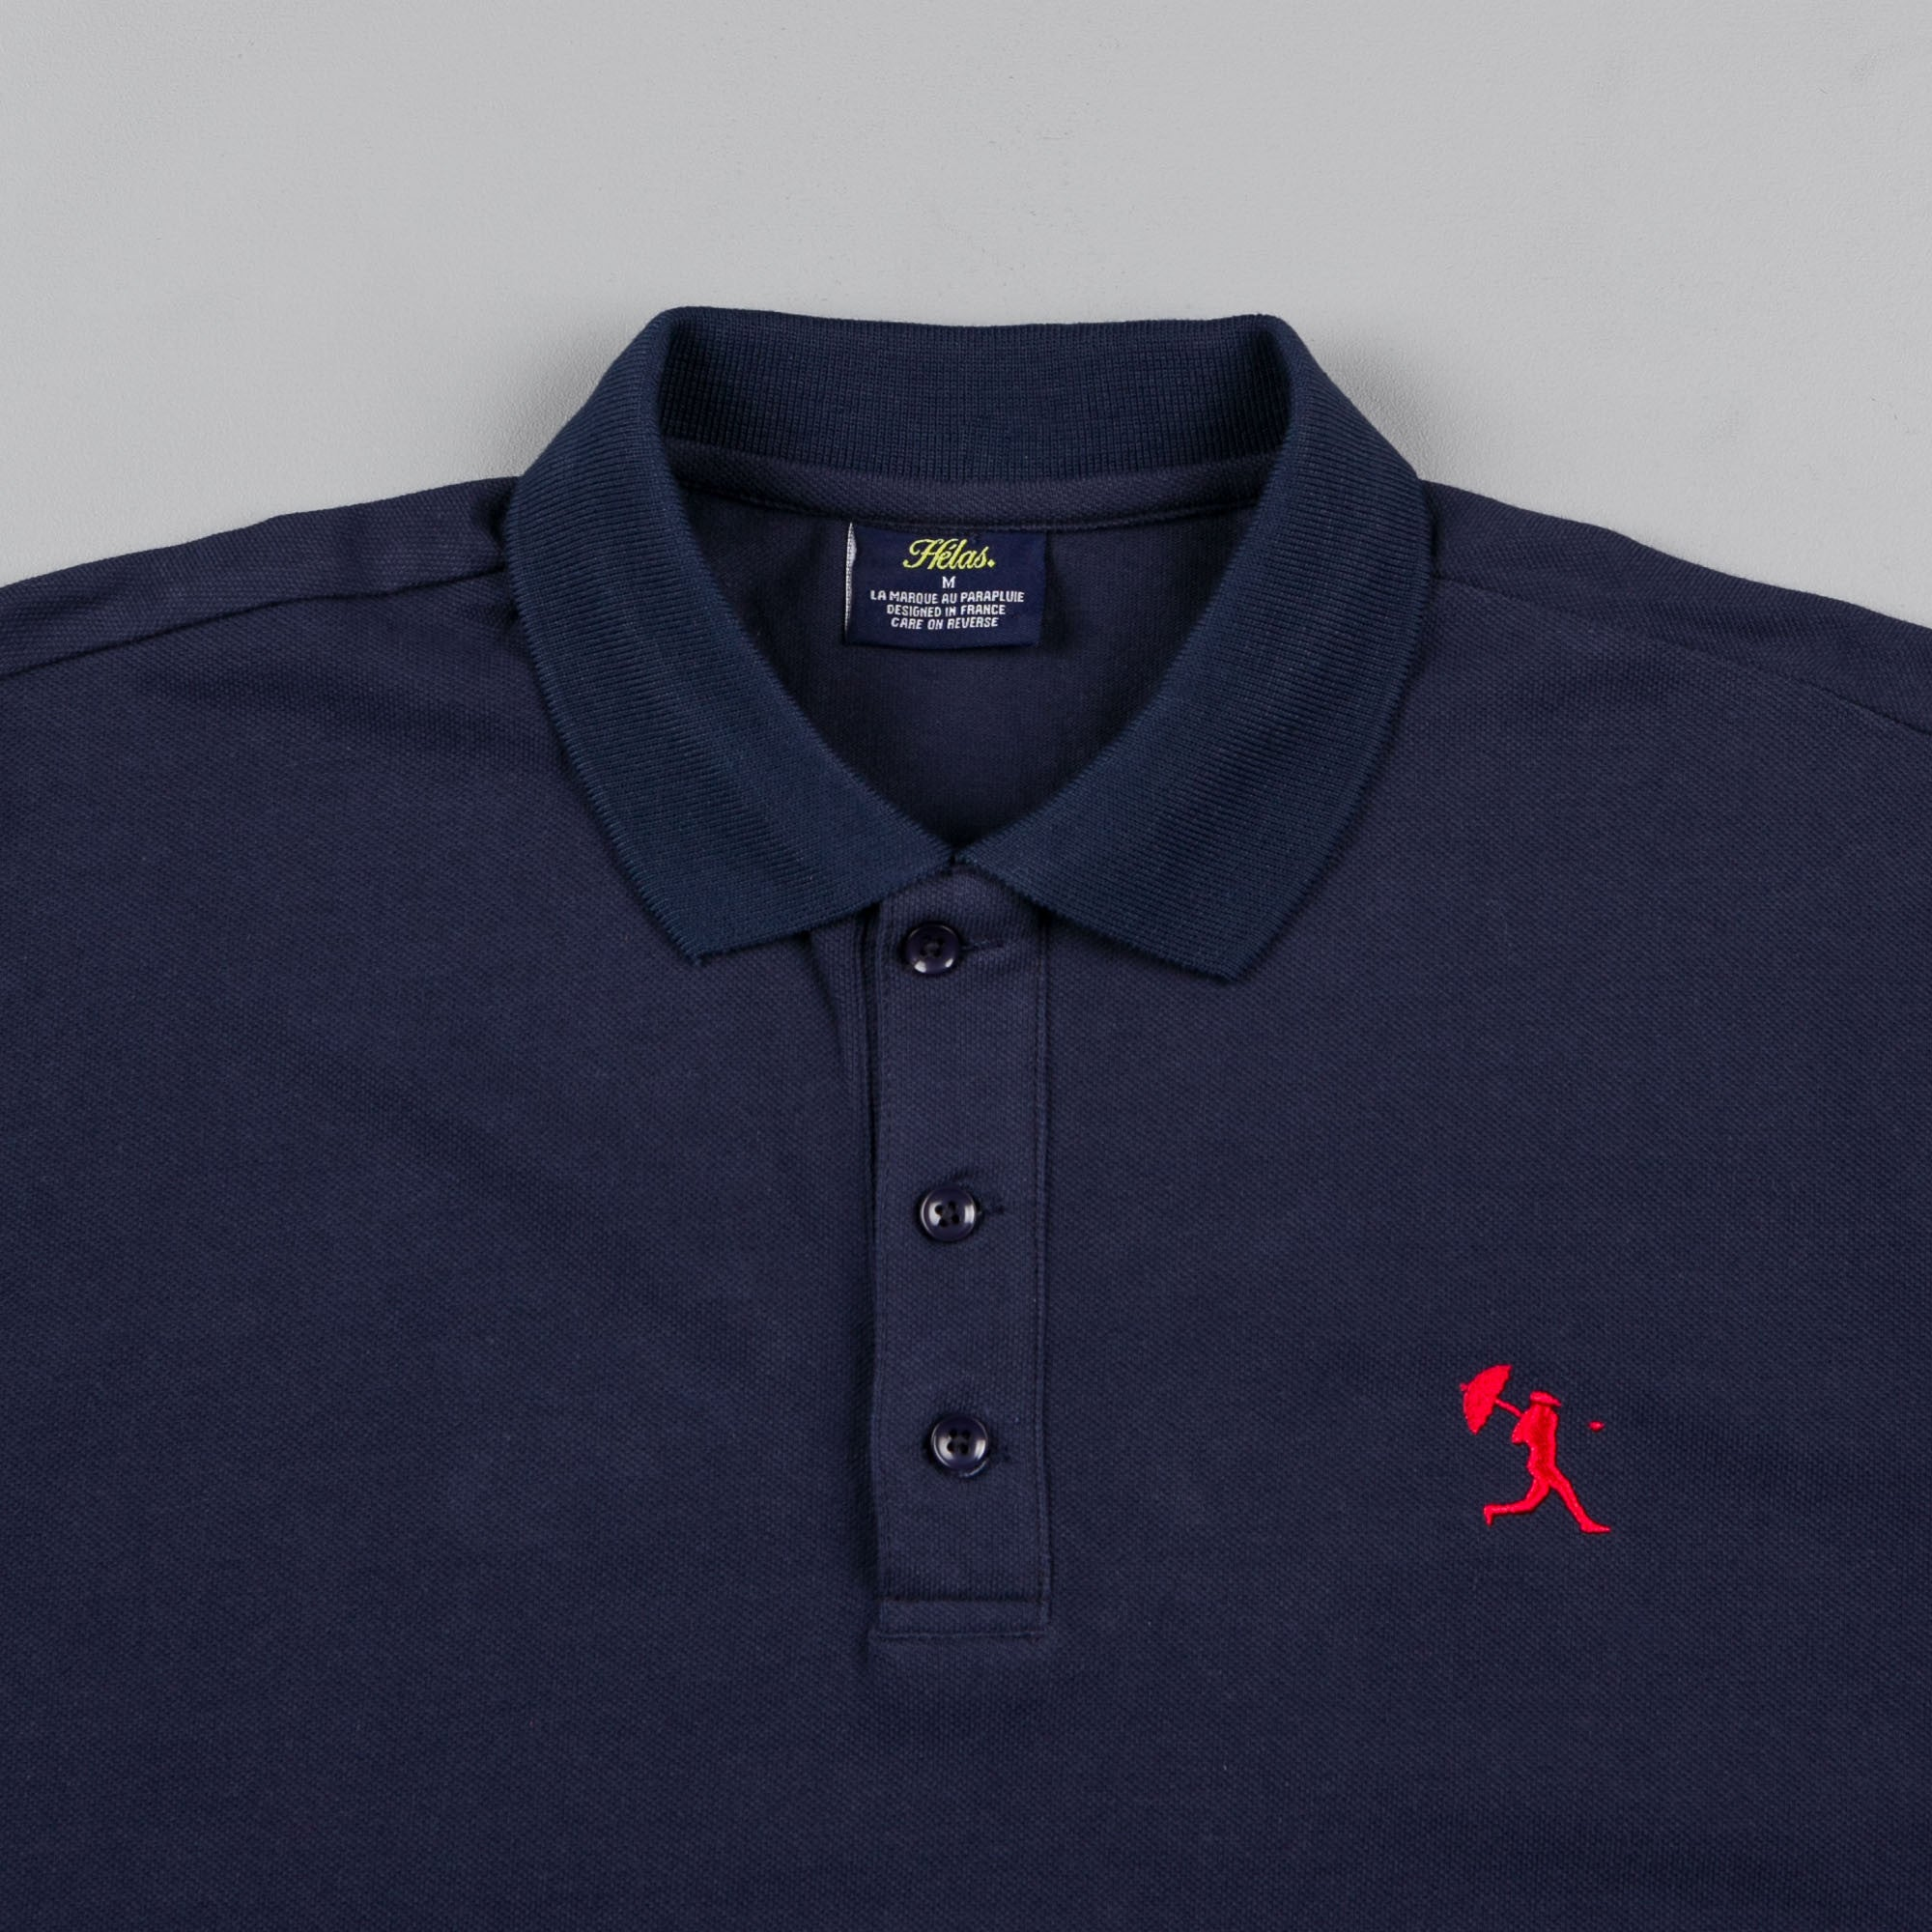 Helas Baller Long Sleeve Polo Shirt - Navy